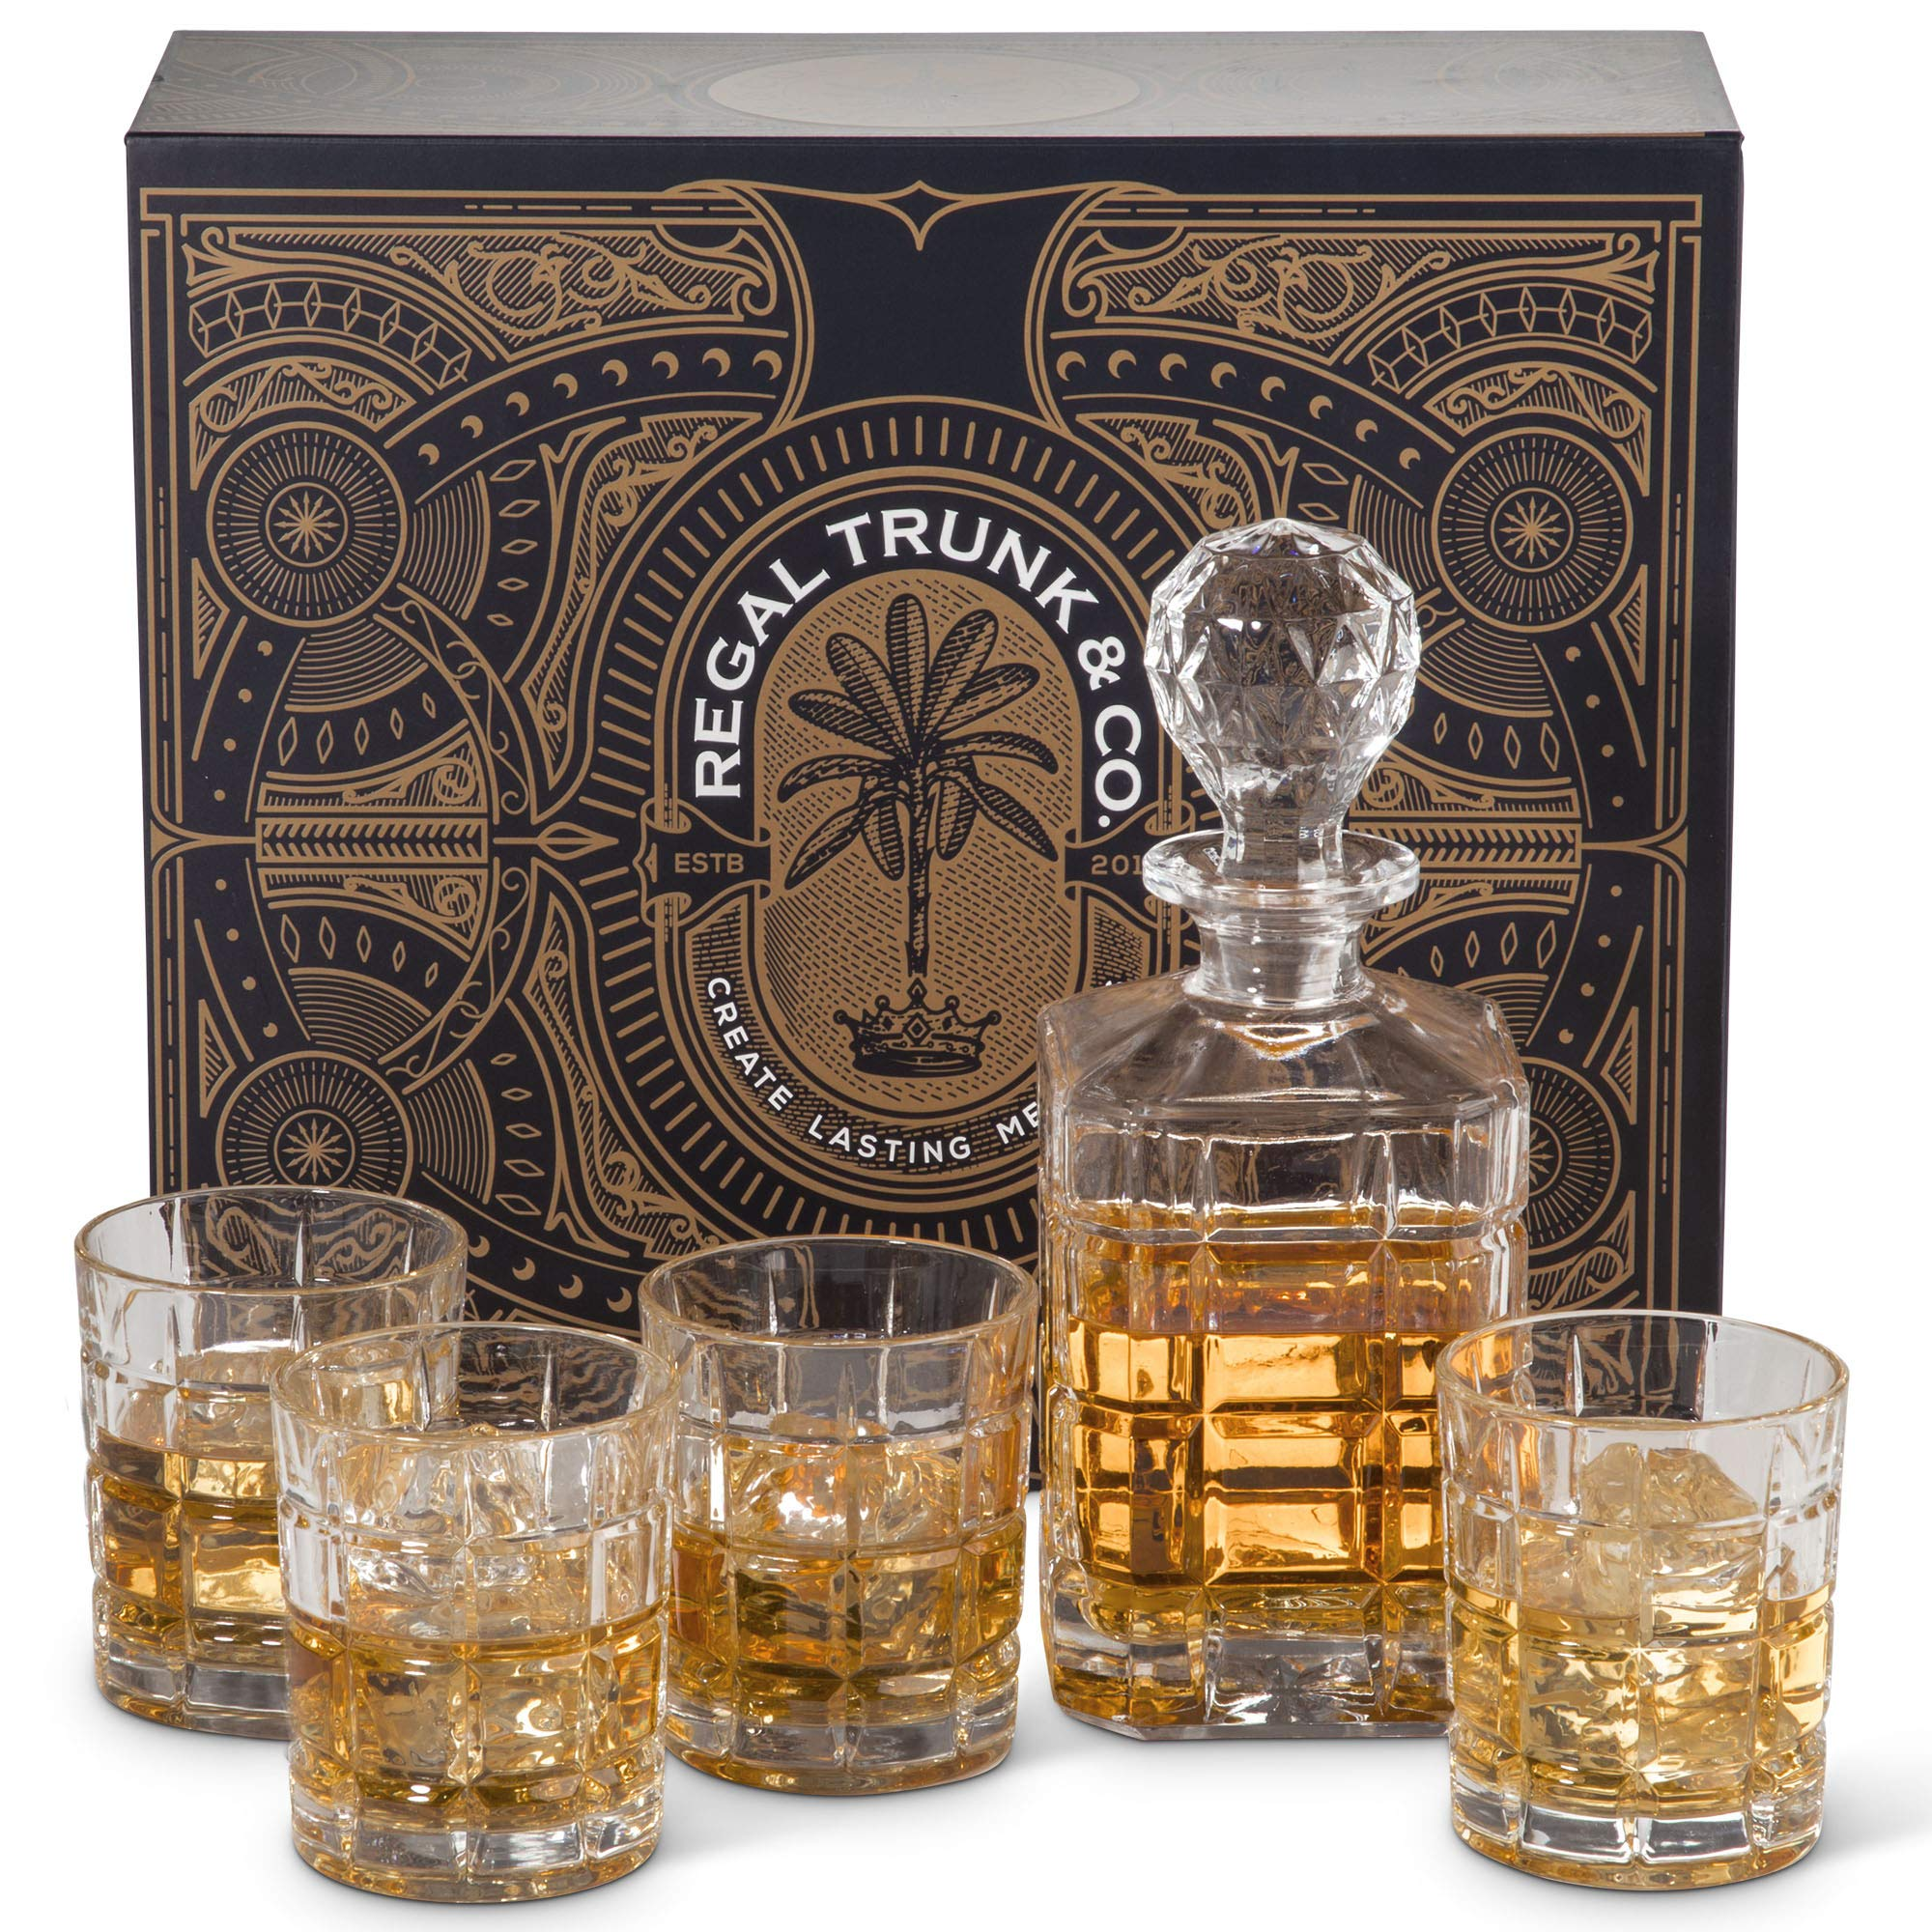 Elegant 5-Piece Glass Whiskey Decanter Set with Square Engraved Rocks Glasses - Anniversary Birthday Wedding And House Warming Gift, Stunning Craftsmanship - Lead-Free Bourbon Scotch Liquor Dispenser